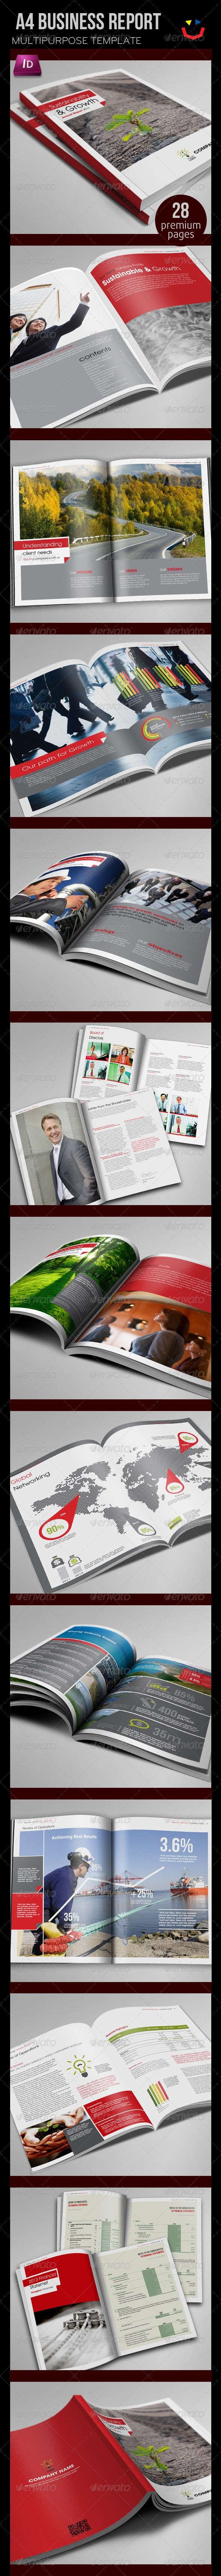 Annual Report Design Template Financial Brochures Indesign